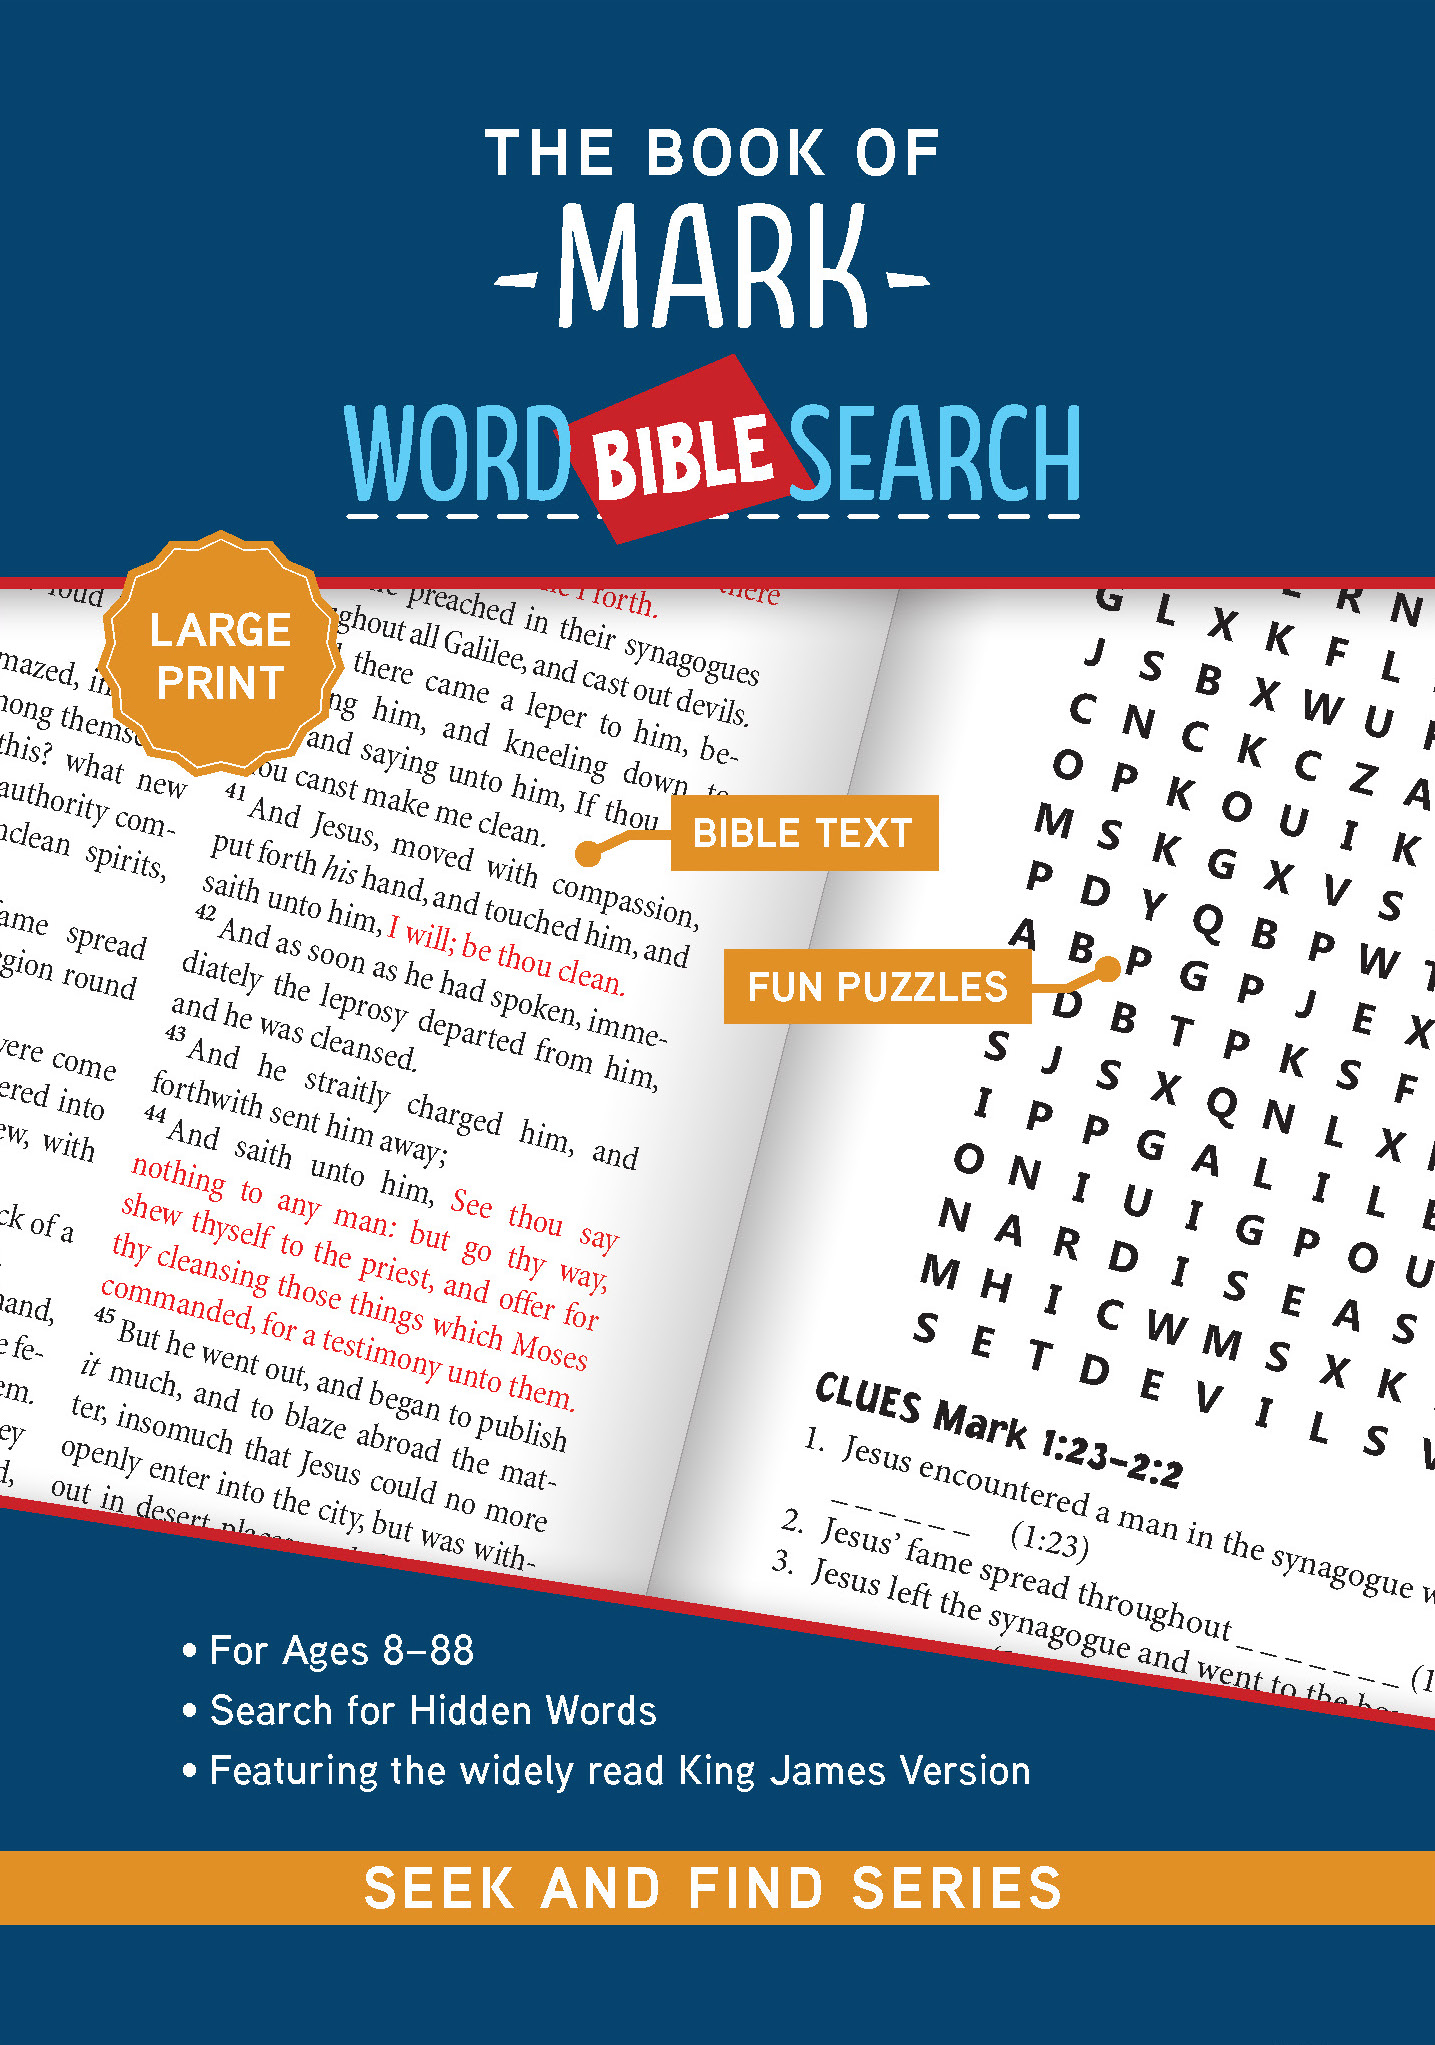 The cover of The Book of Mark: Bible Word Search (Seek and Find) - Large Print